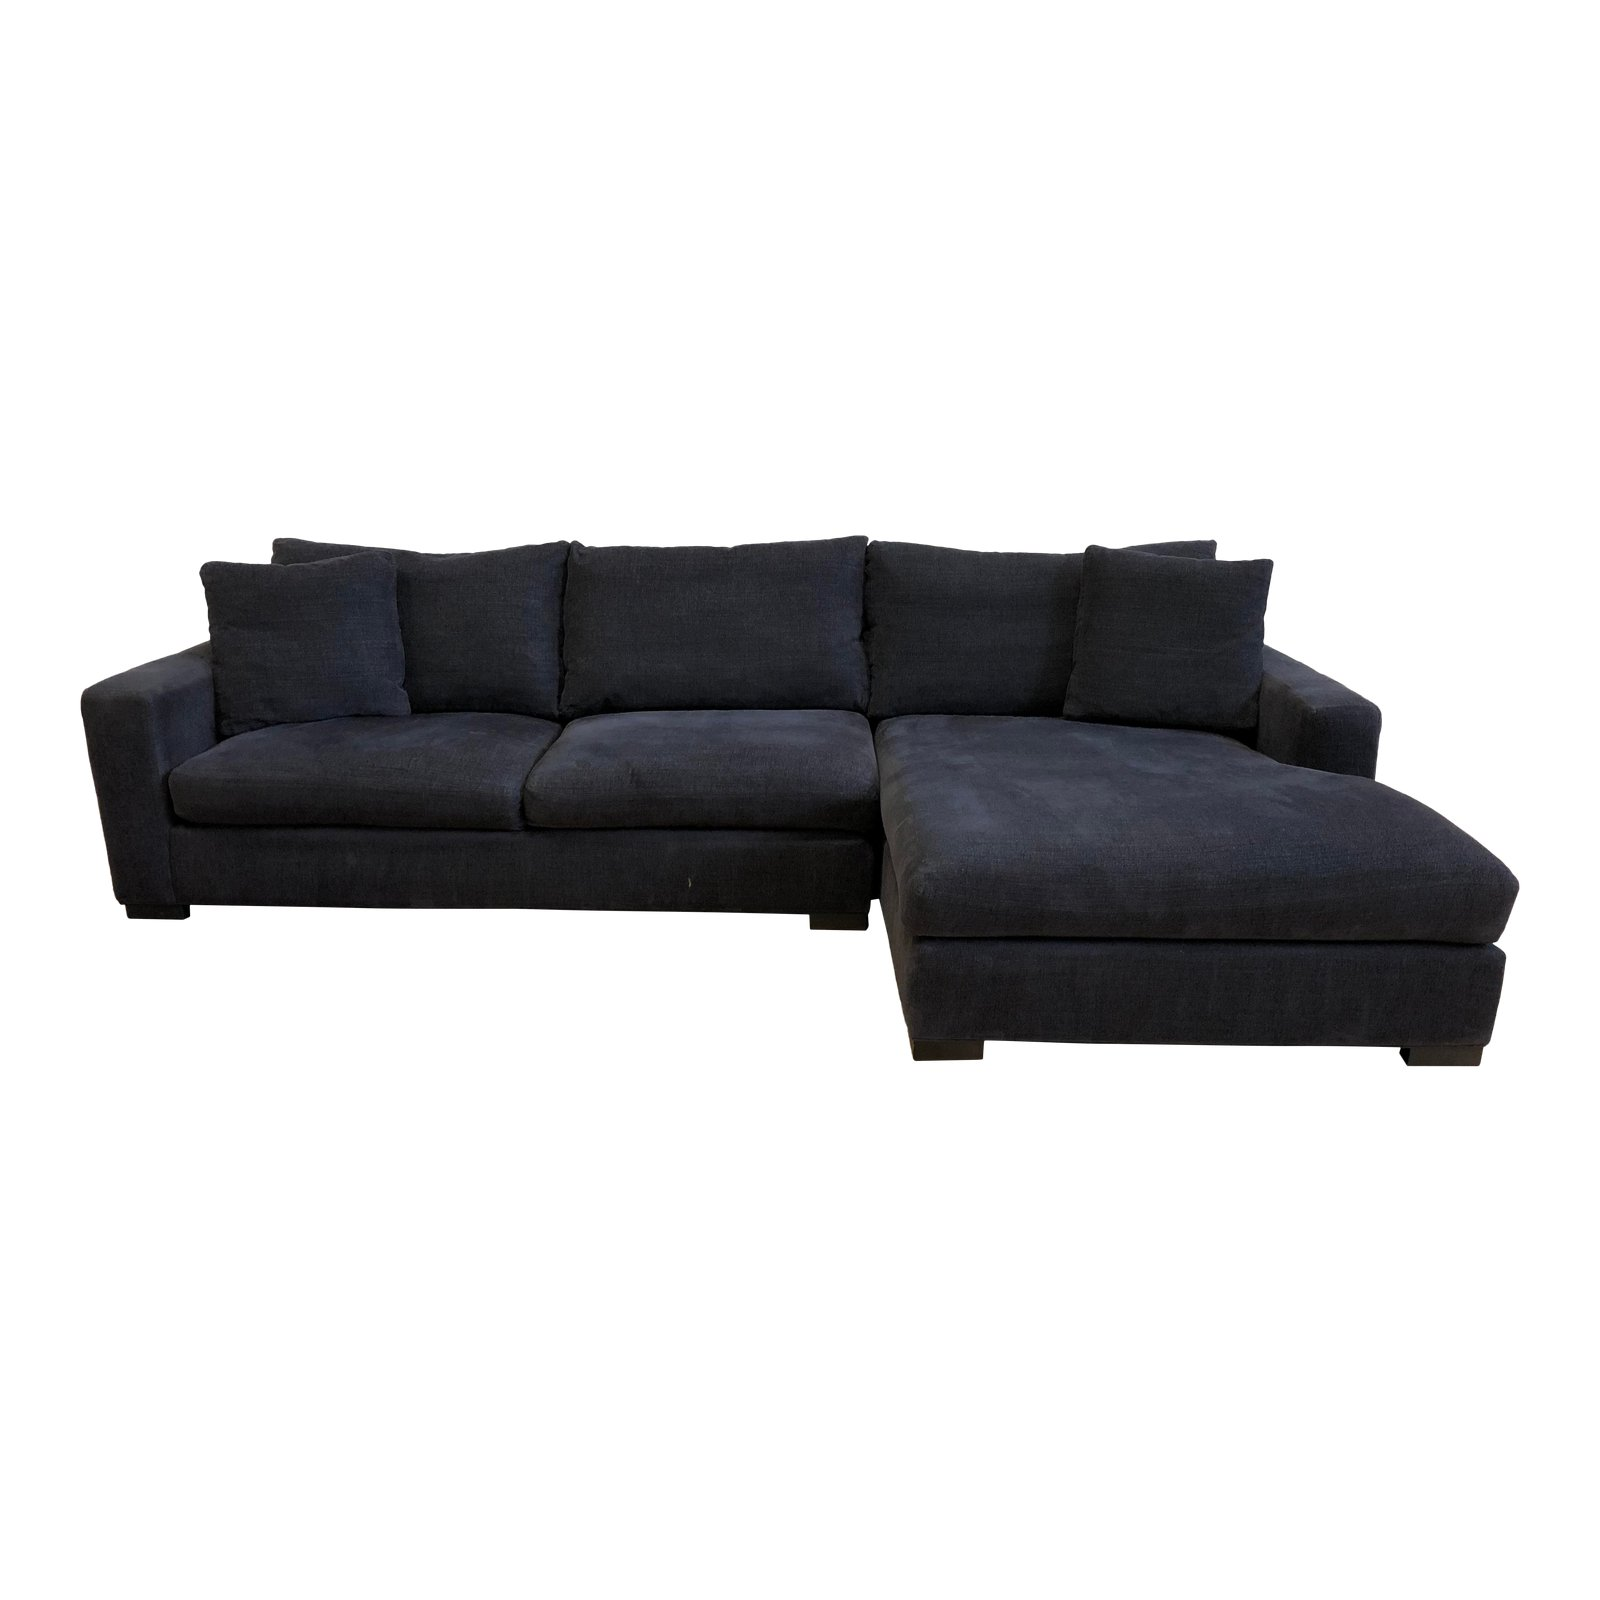 Room Amp Board Metro Right Chaise Sectional Original Price